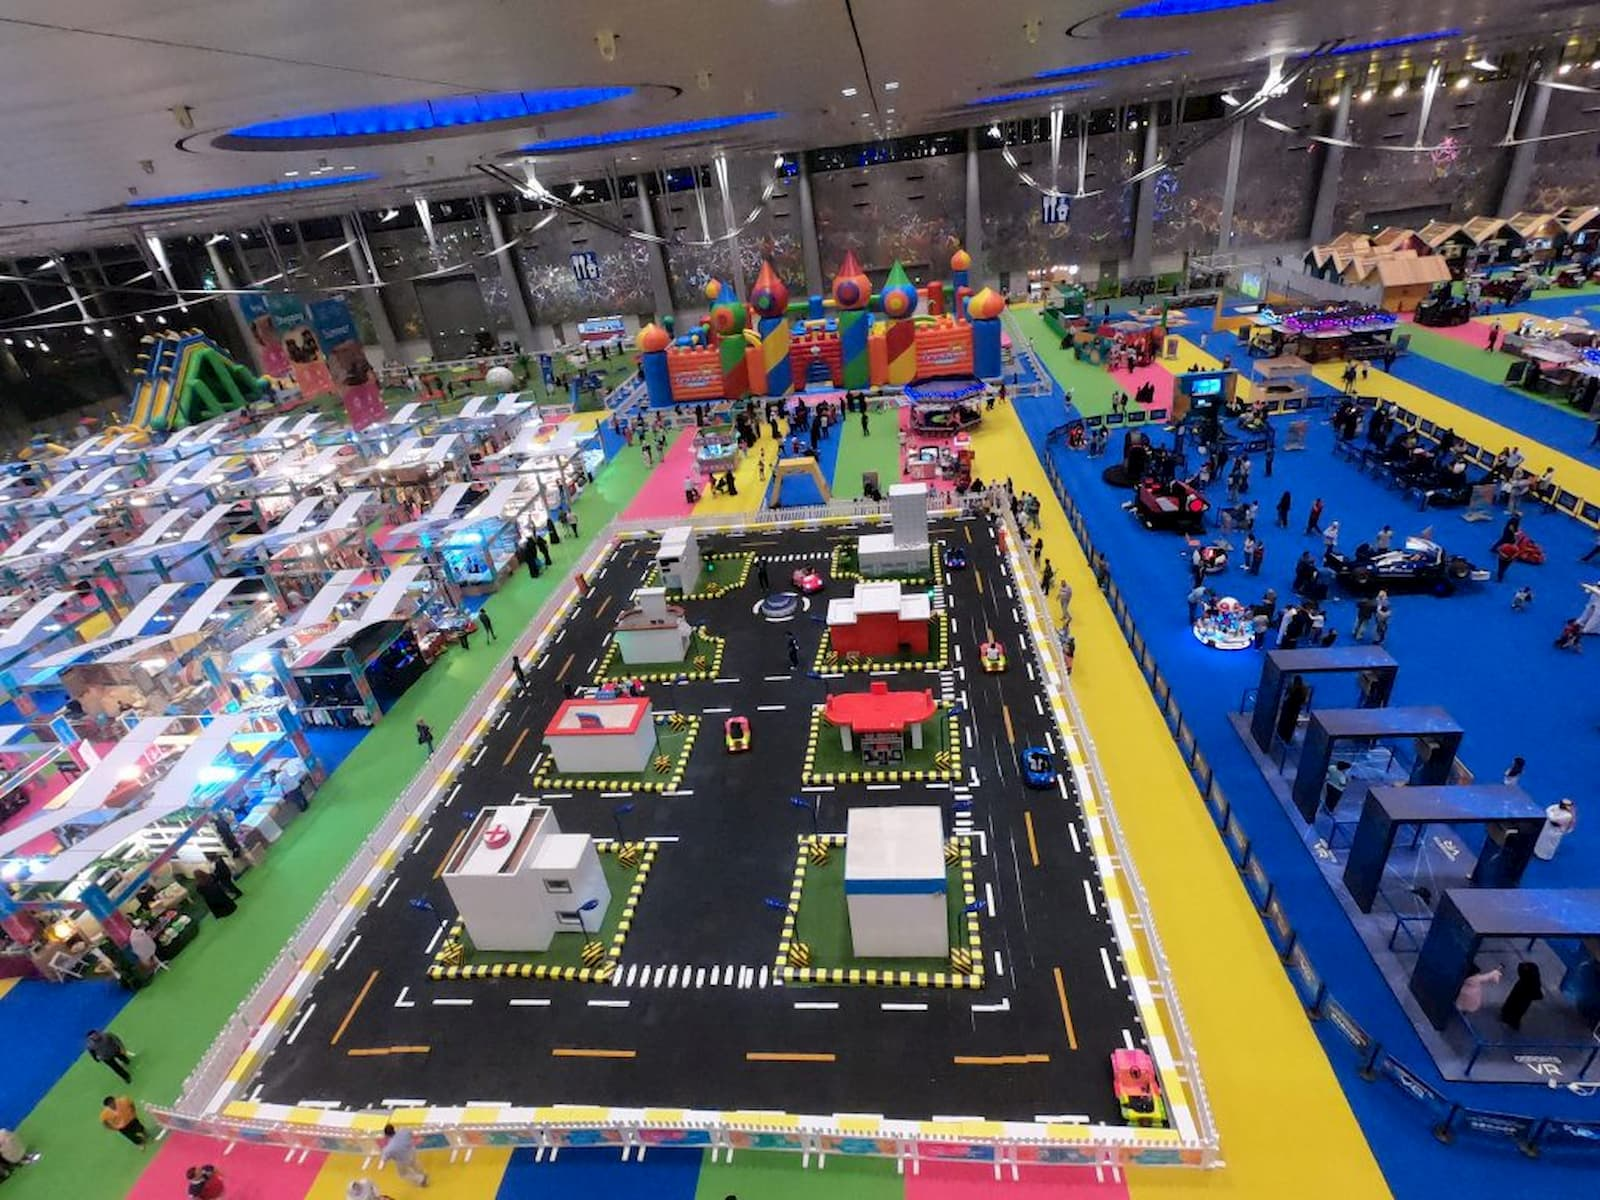 This is an image of the driving school for kids at Summer Entertainment City.